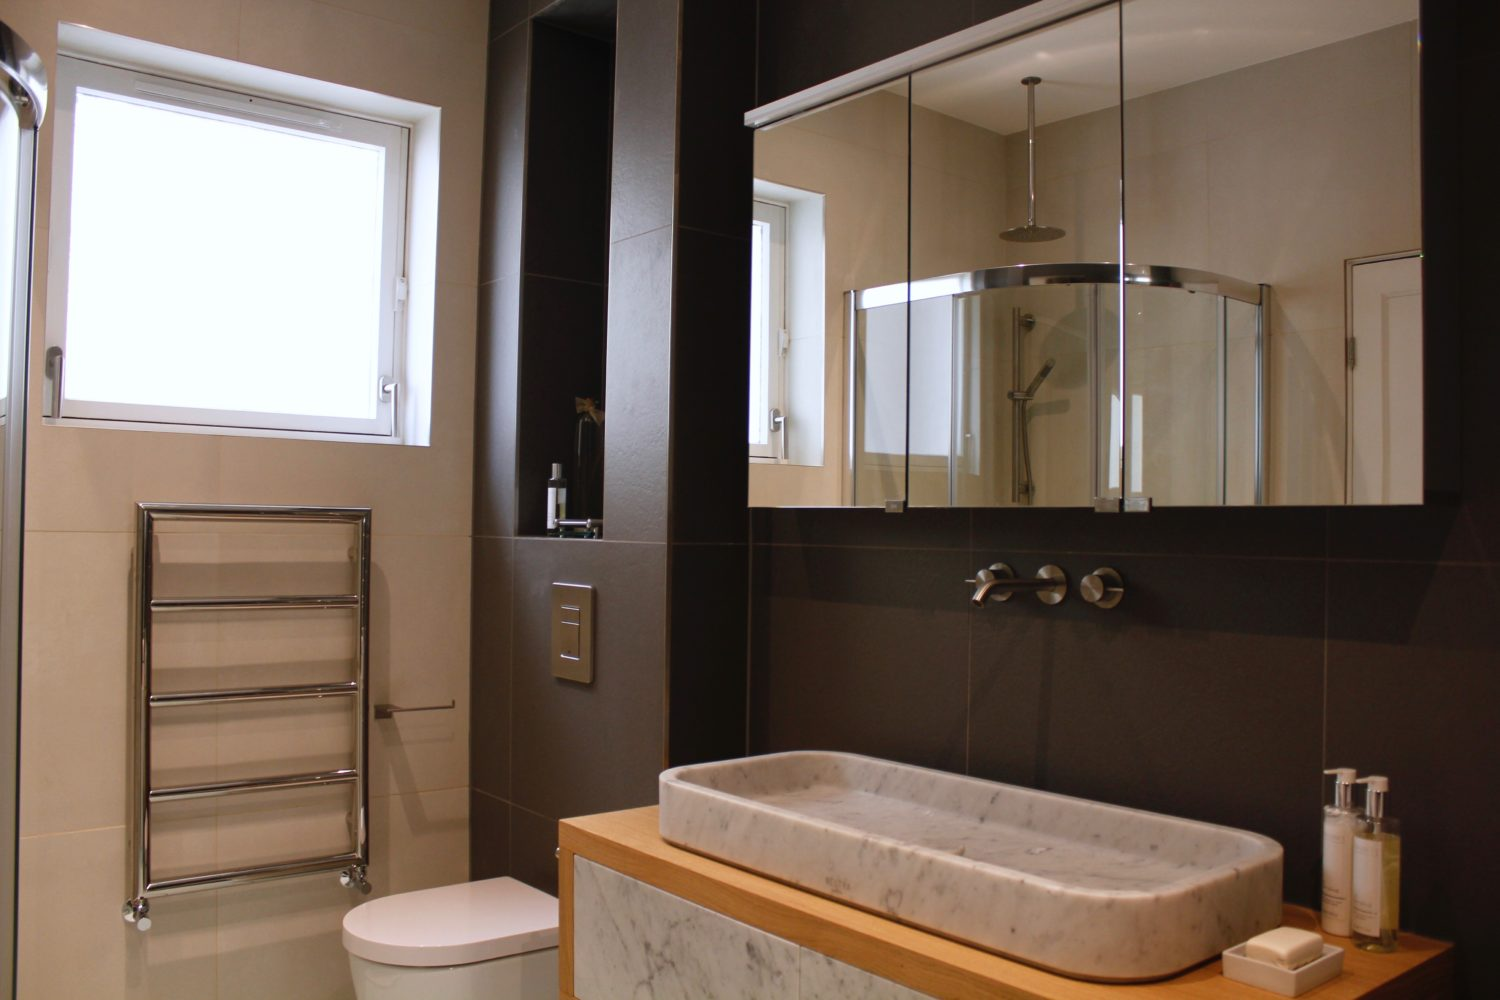 Bathroom Design for en suite. Bedroom in Belsize Park home. Interior Design Portfolio from NW3 Interiors. Click to view all our beautiful homes across Primrose Hill, Belsize Park and other areas in North London.